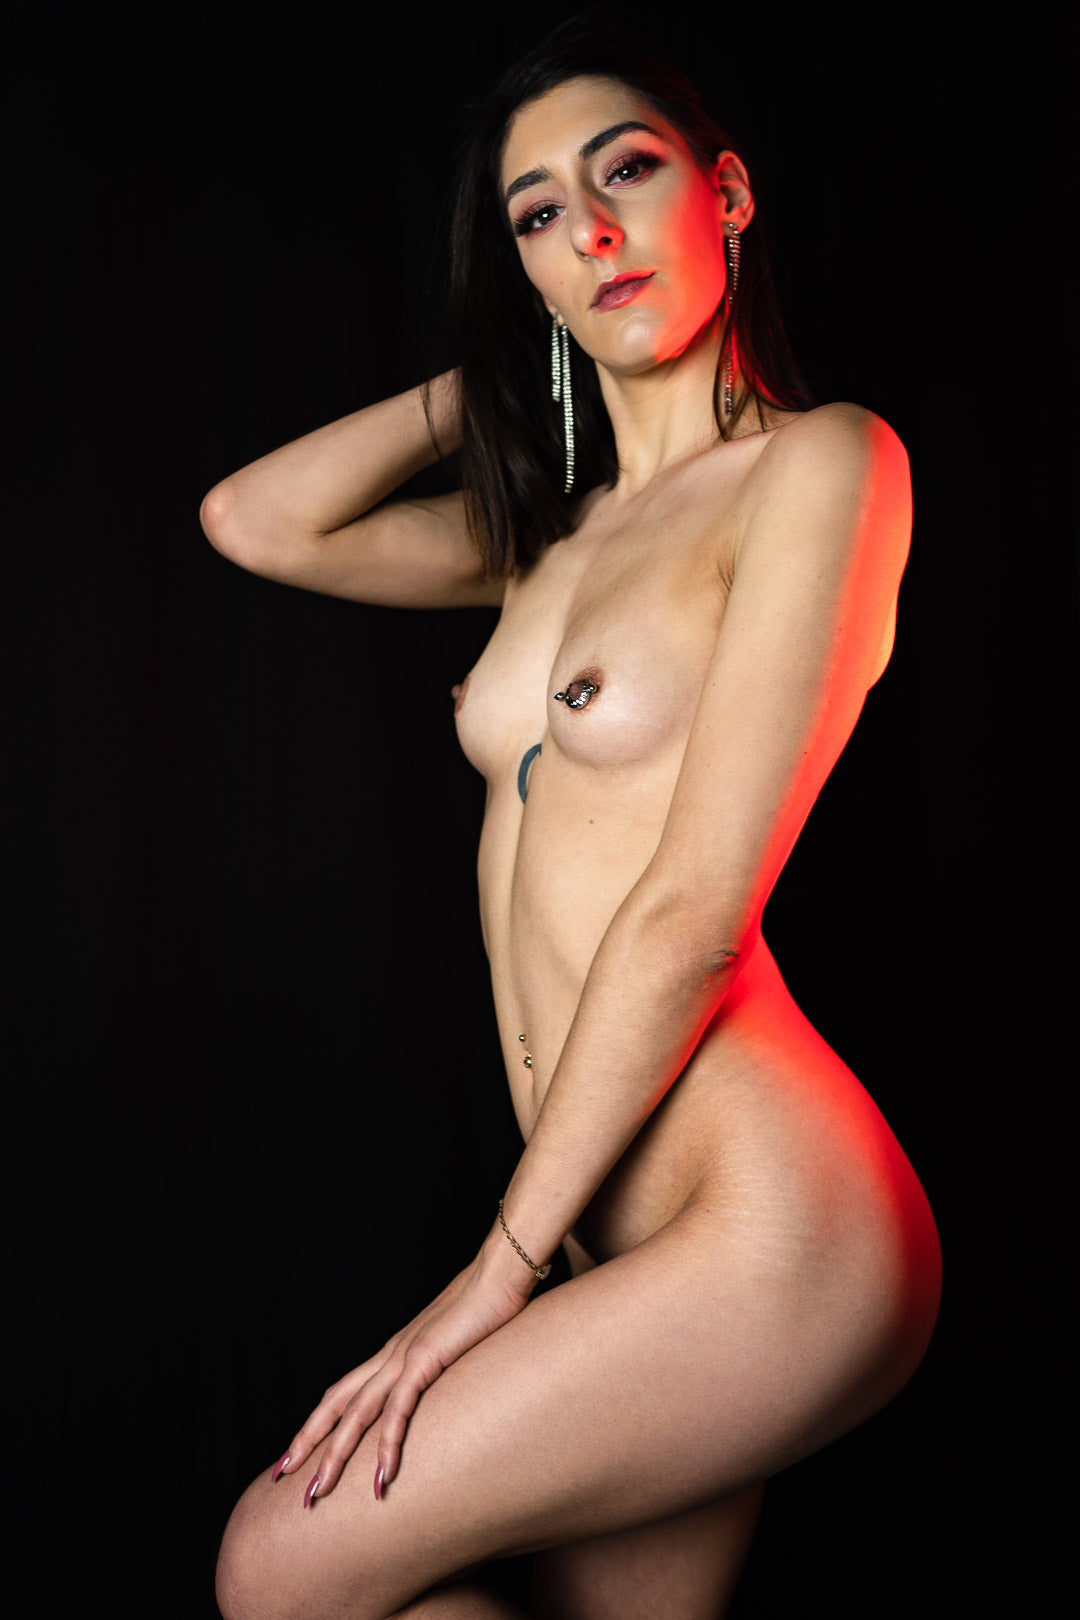 Artistic nude of a woman in photo studio